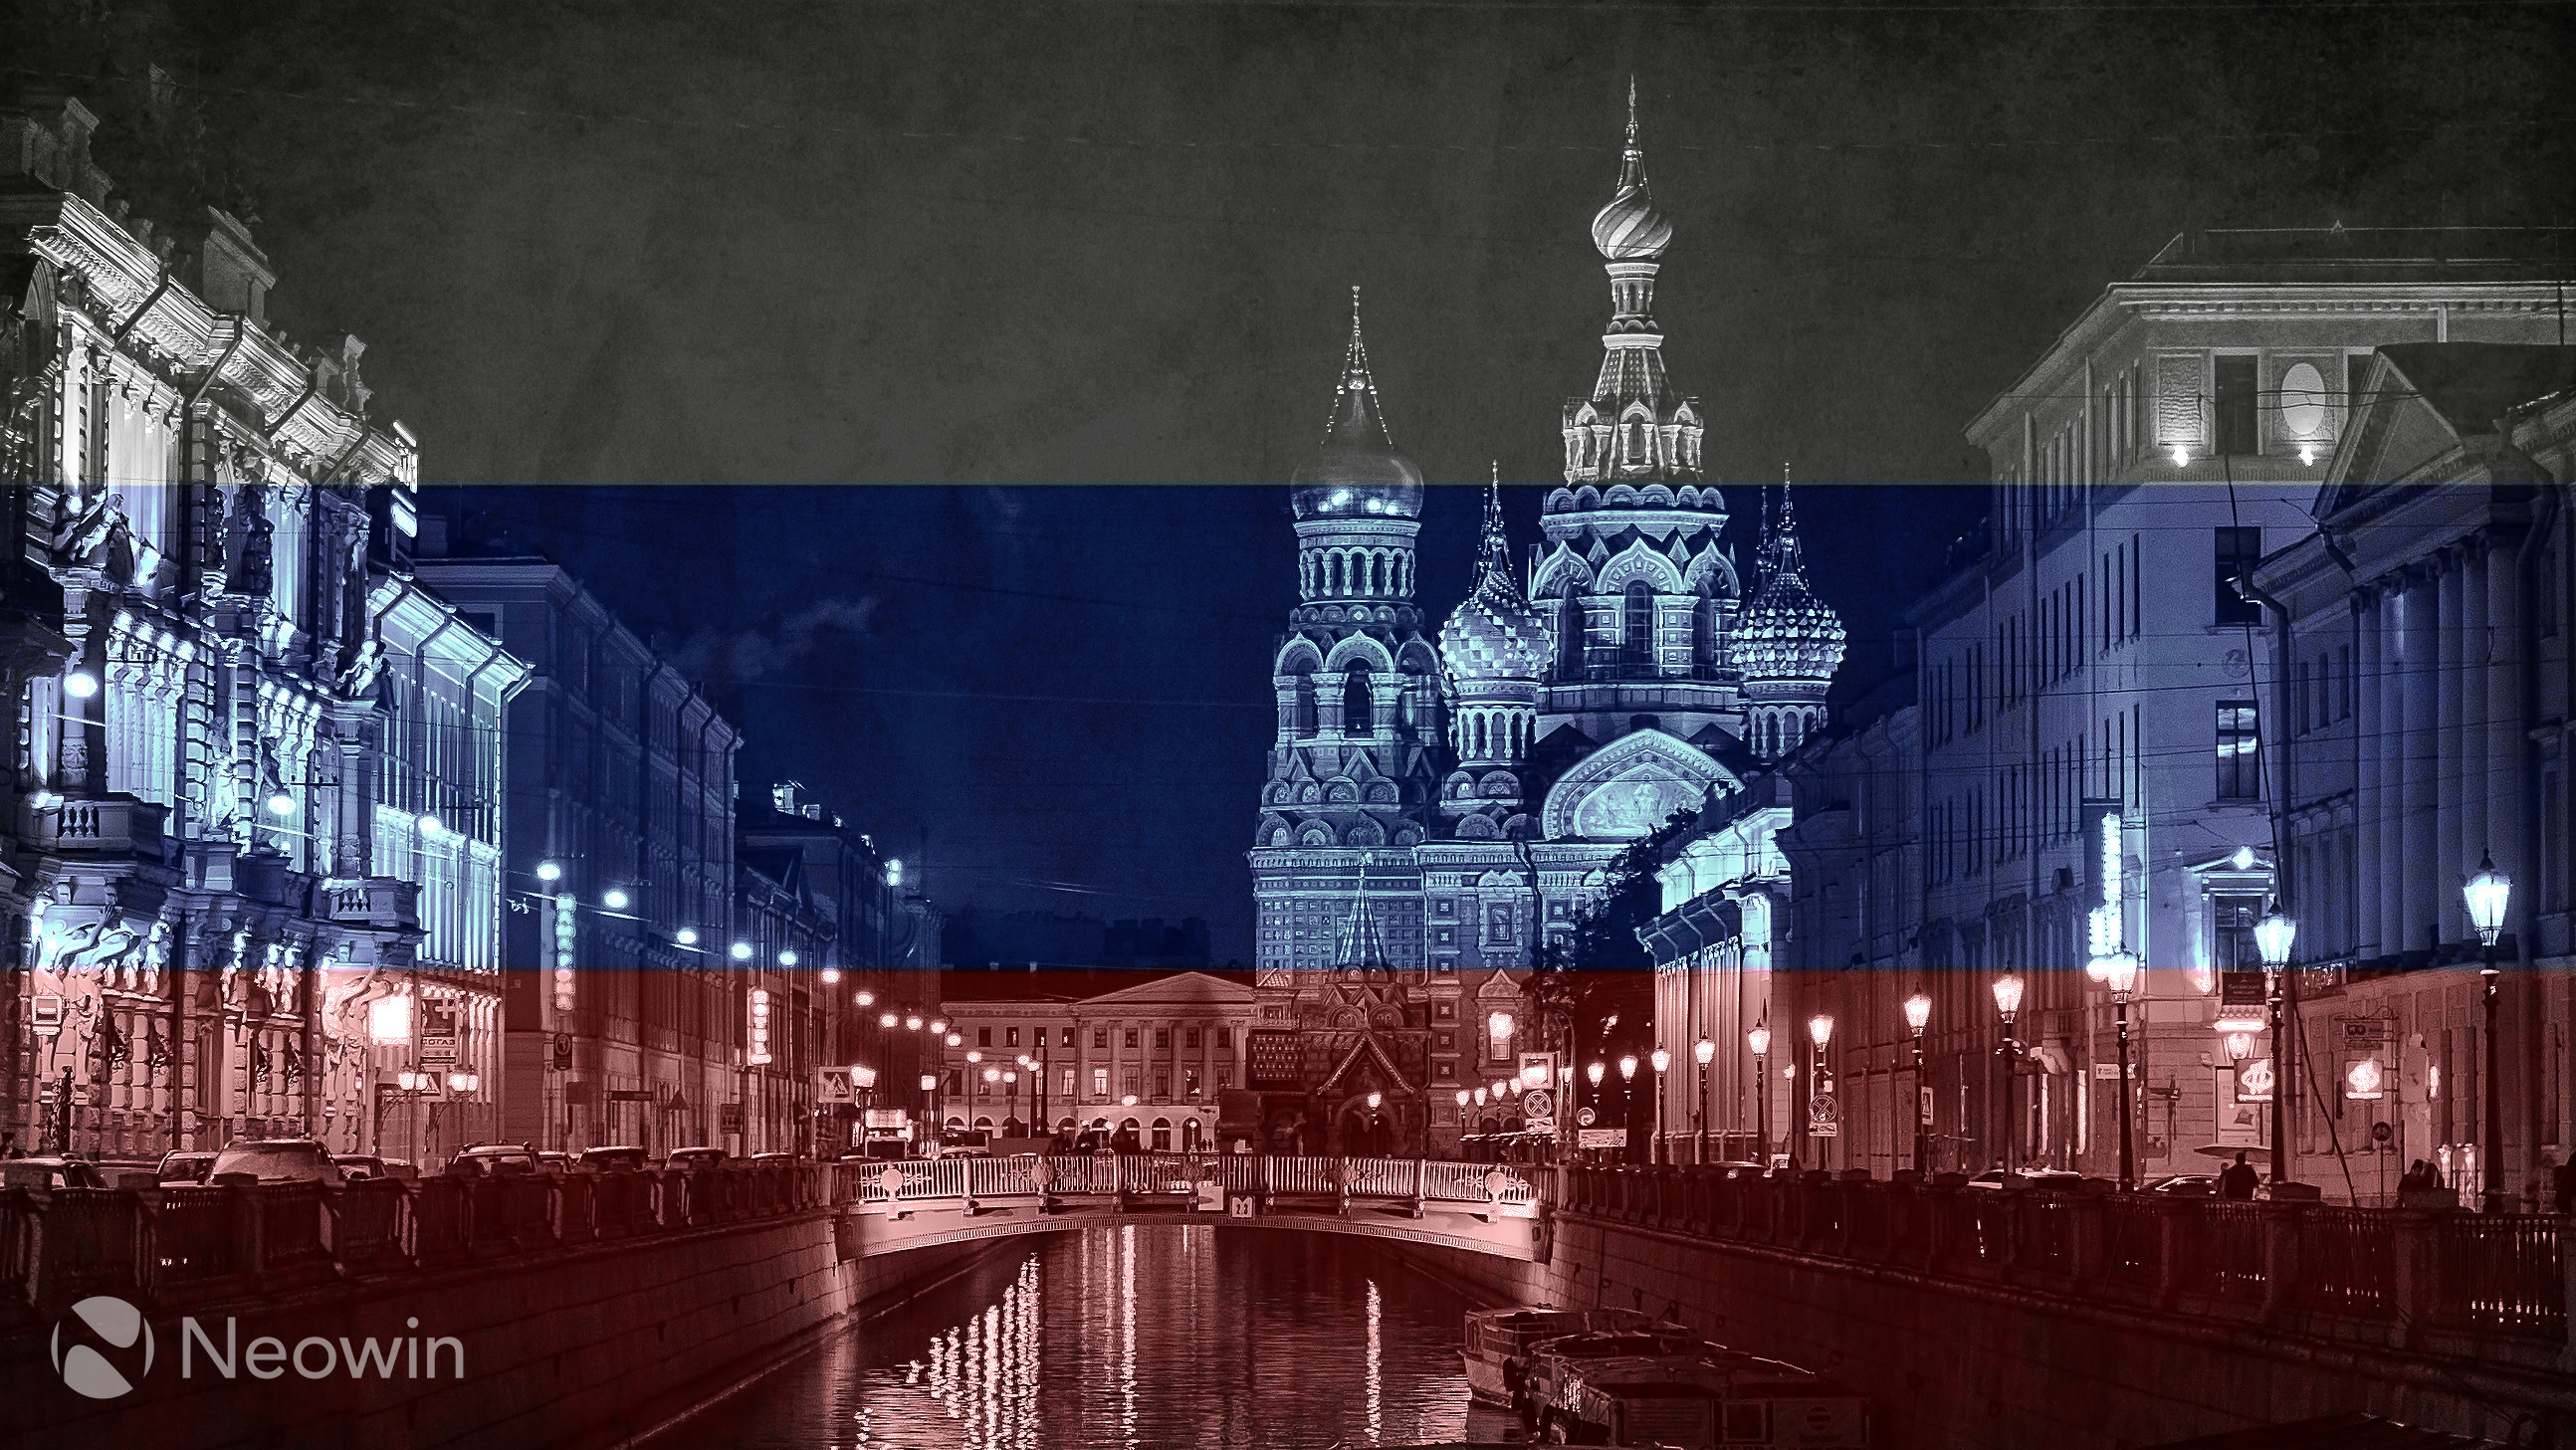 Russian Federation may soon issue its own official blockchain-based currency, the CryptoRuble